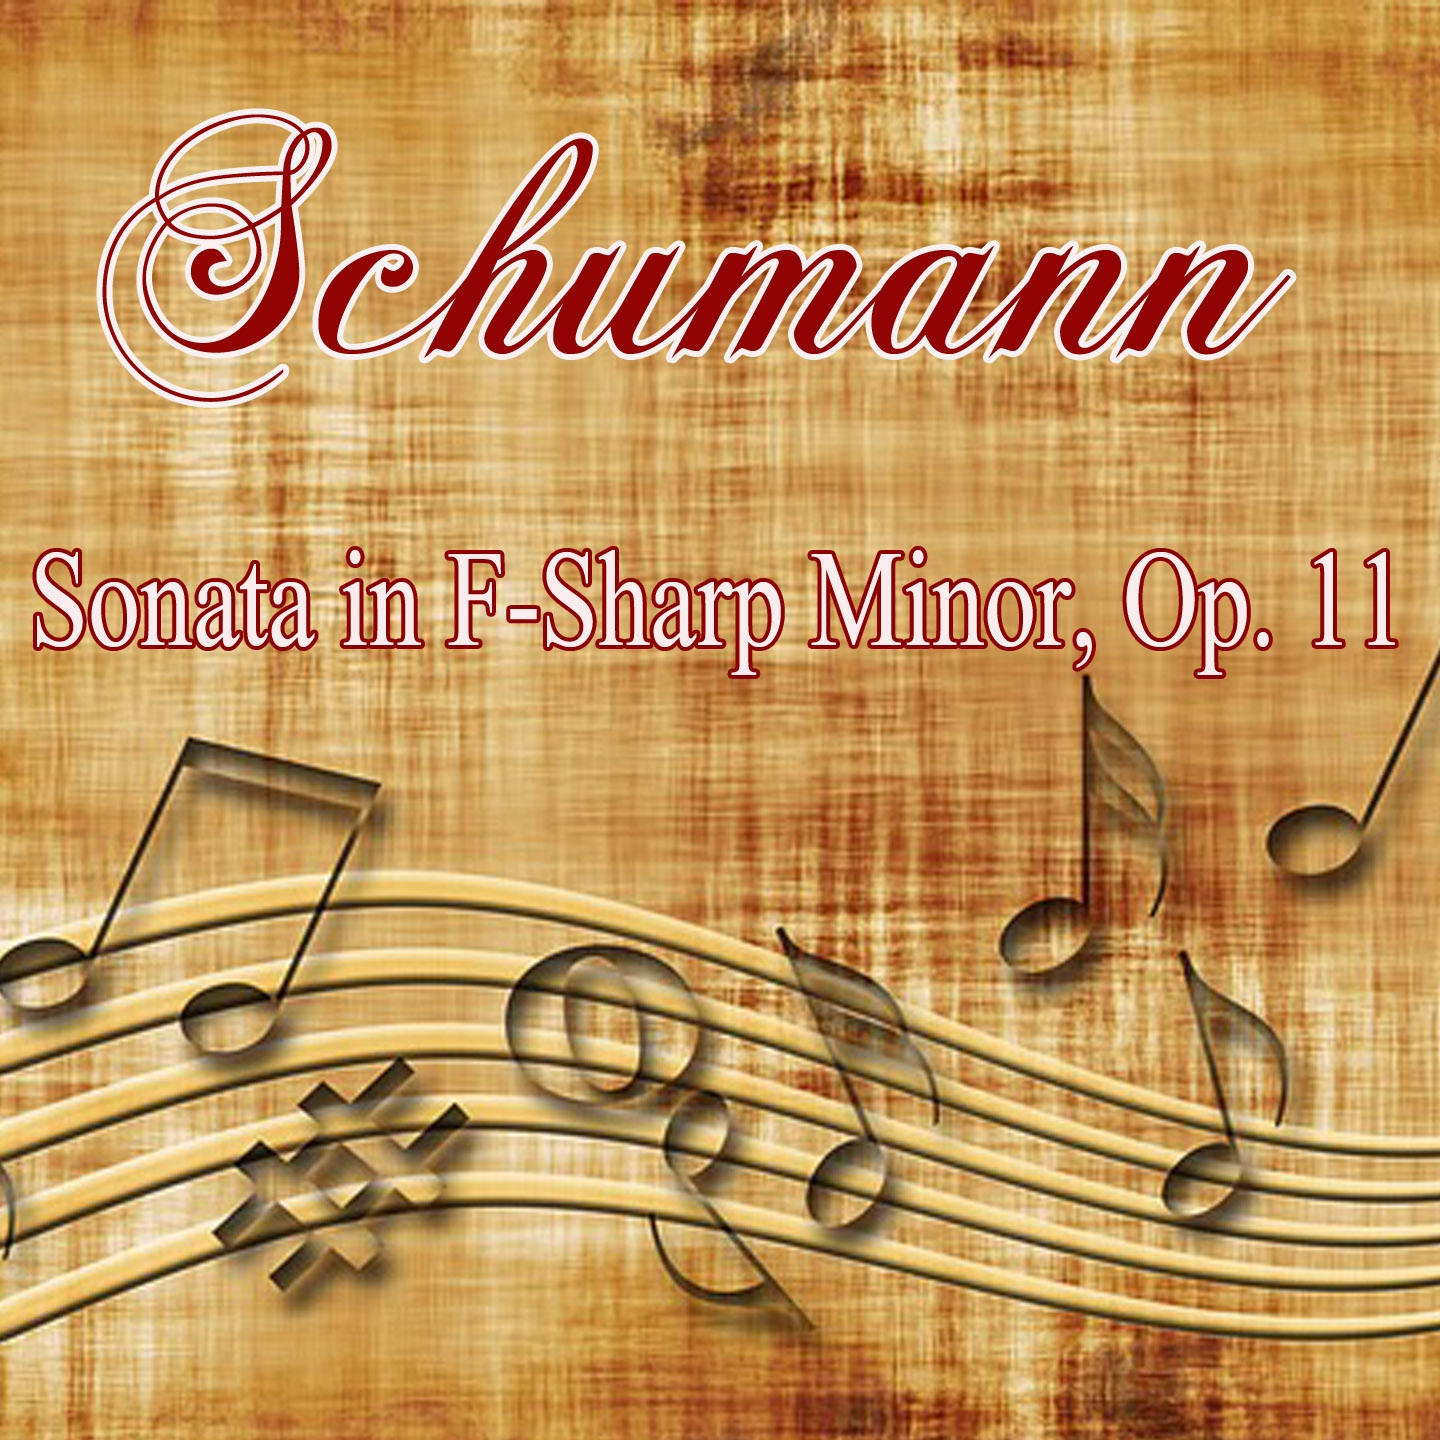 Schumann: Sonata in F-Sharp Minor, Op. 11